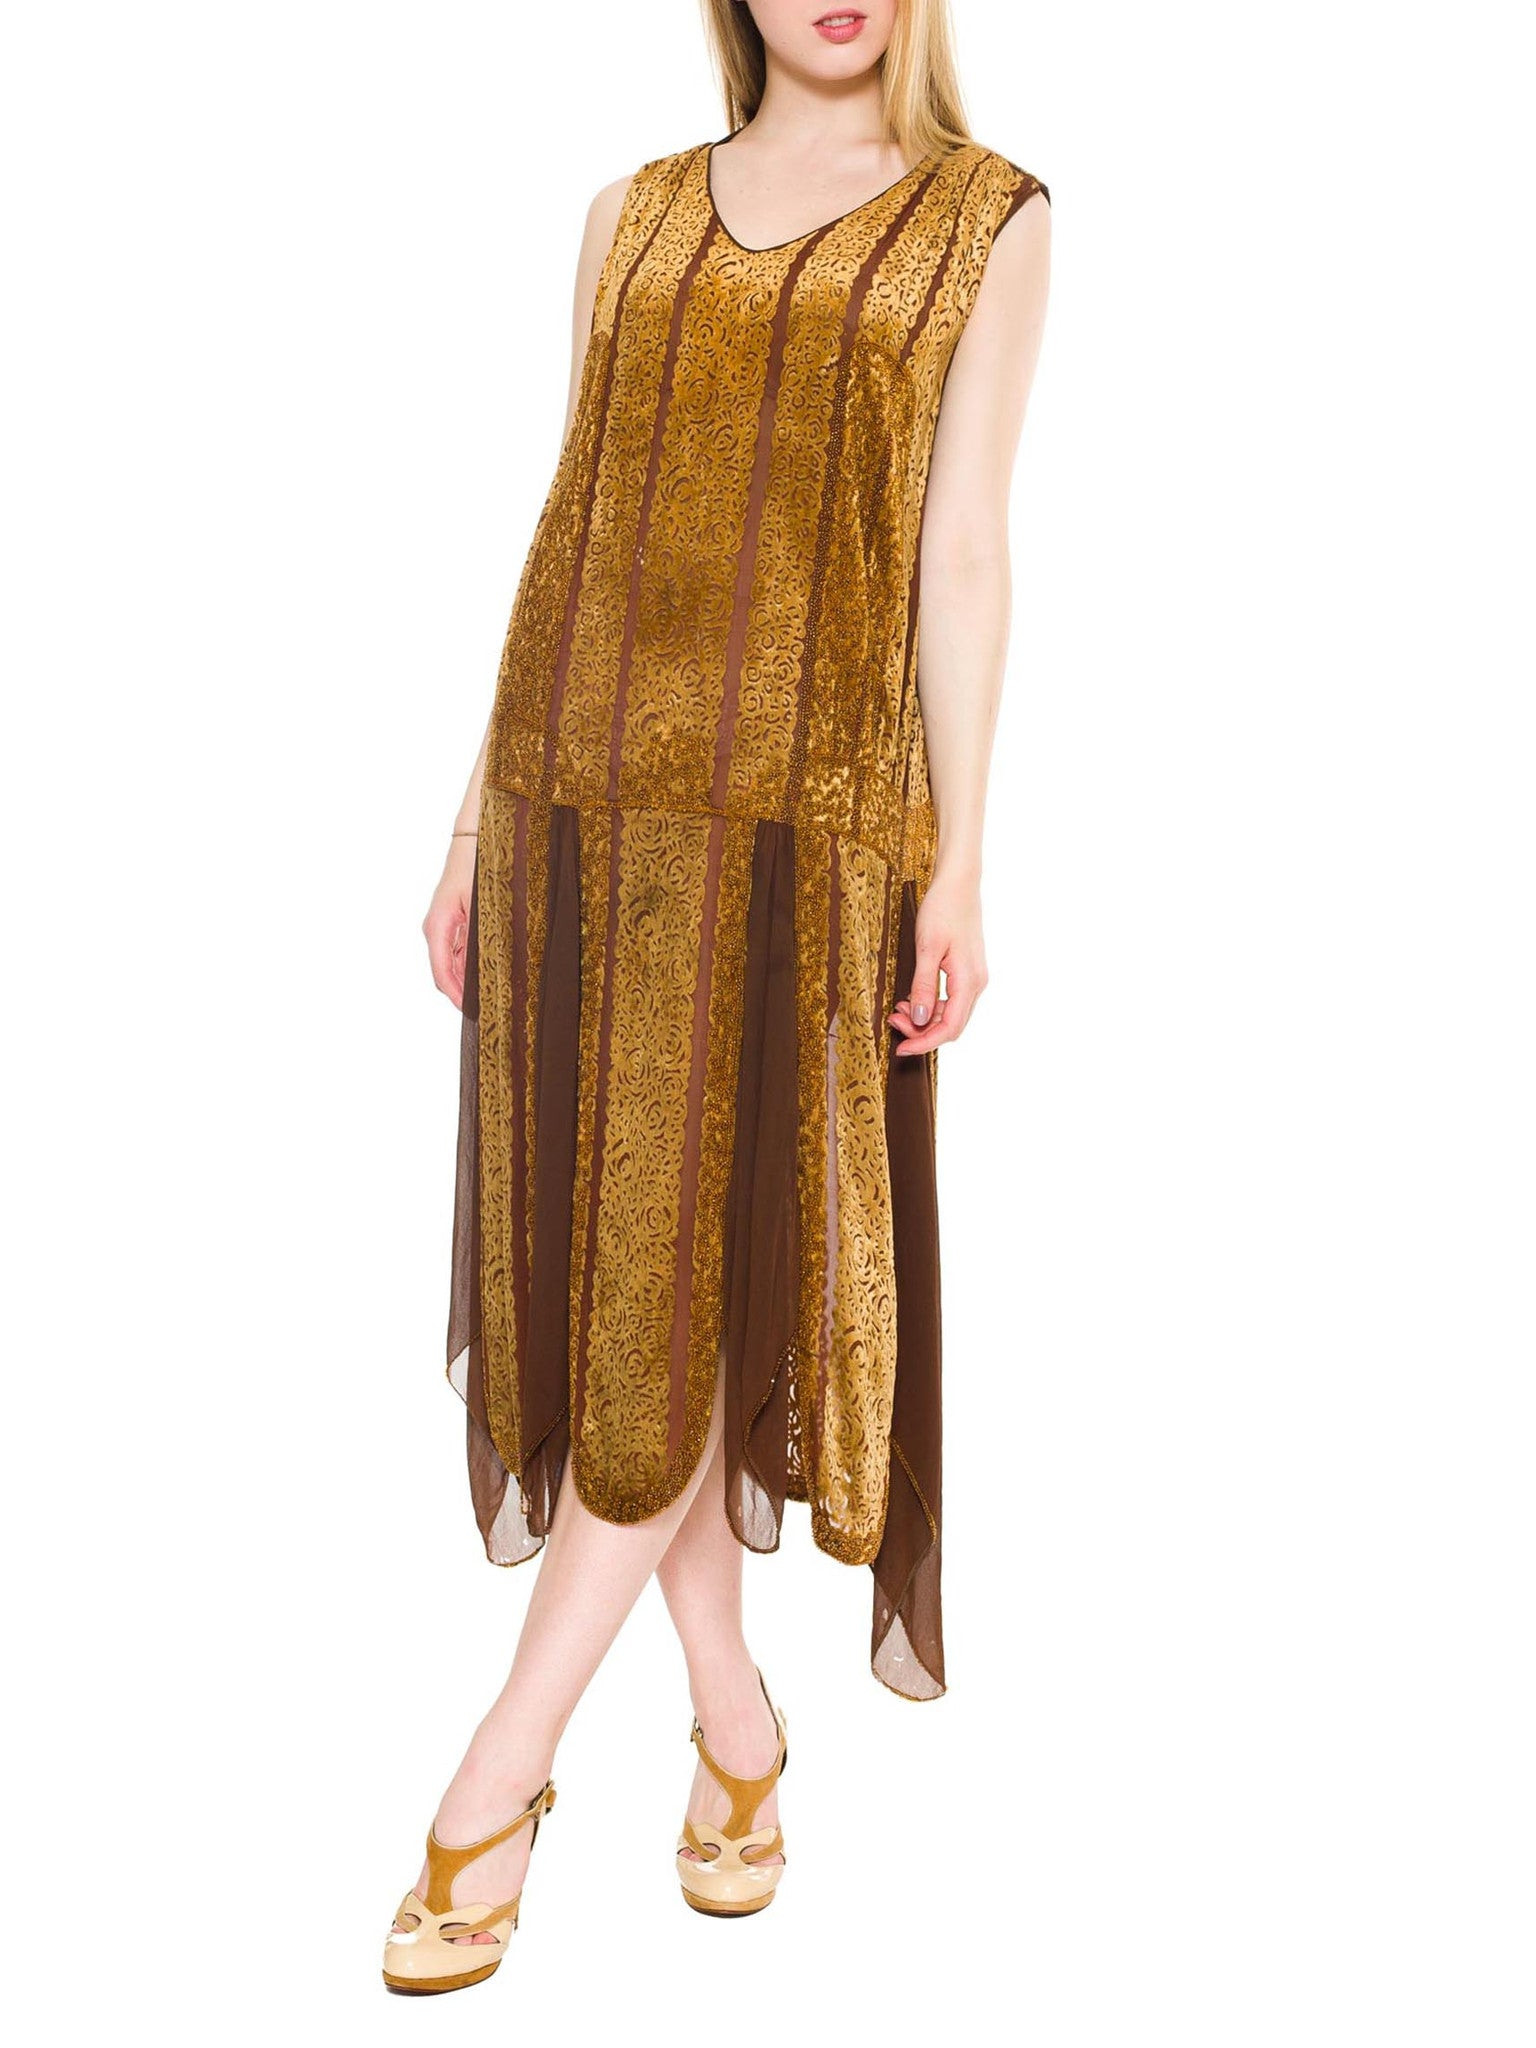 1920s Silk Velvet And Chiffon Dress